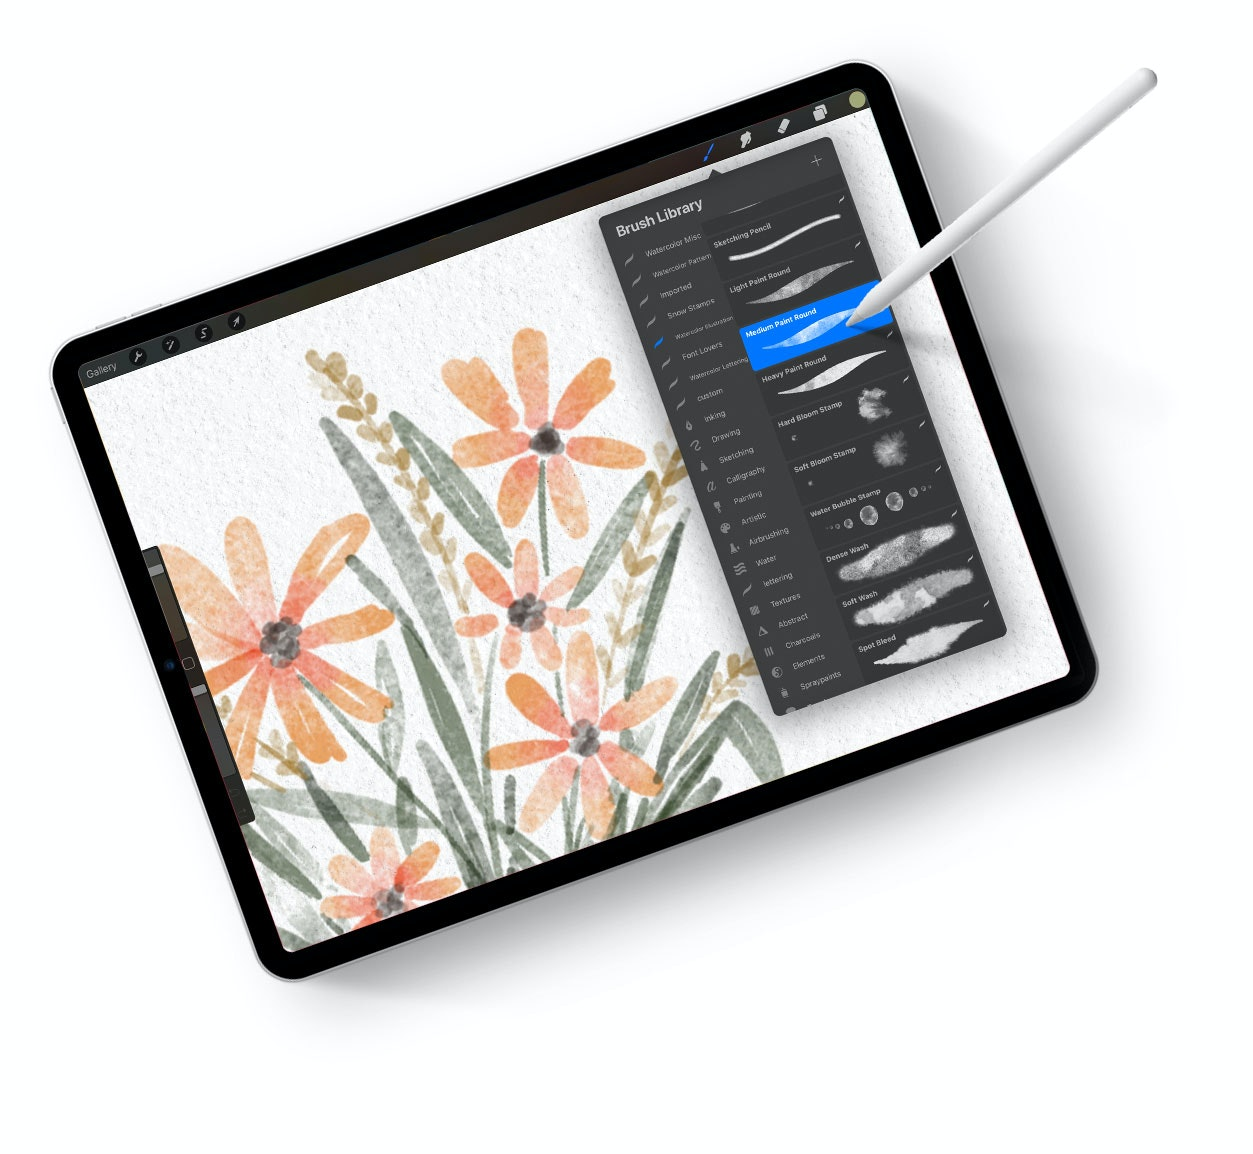 Watercolor florals in Procreate is 100% self-paced learning